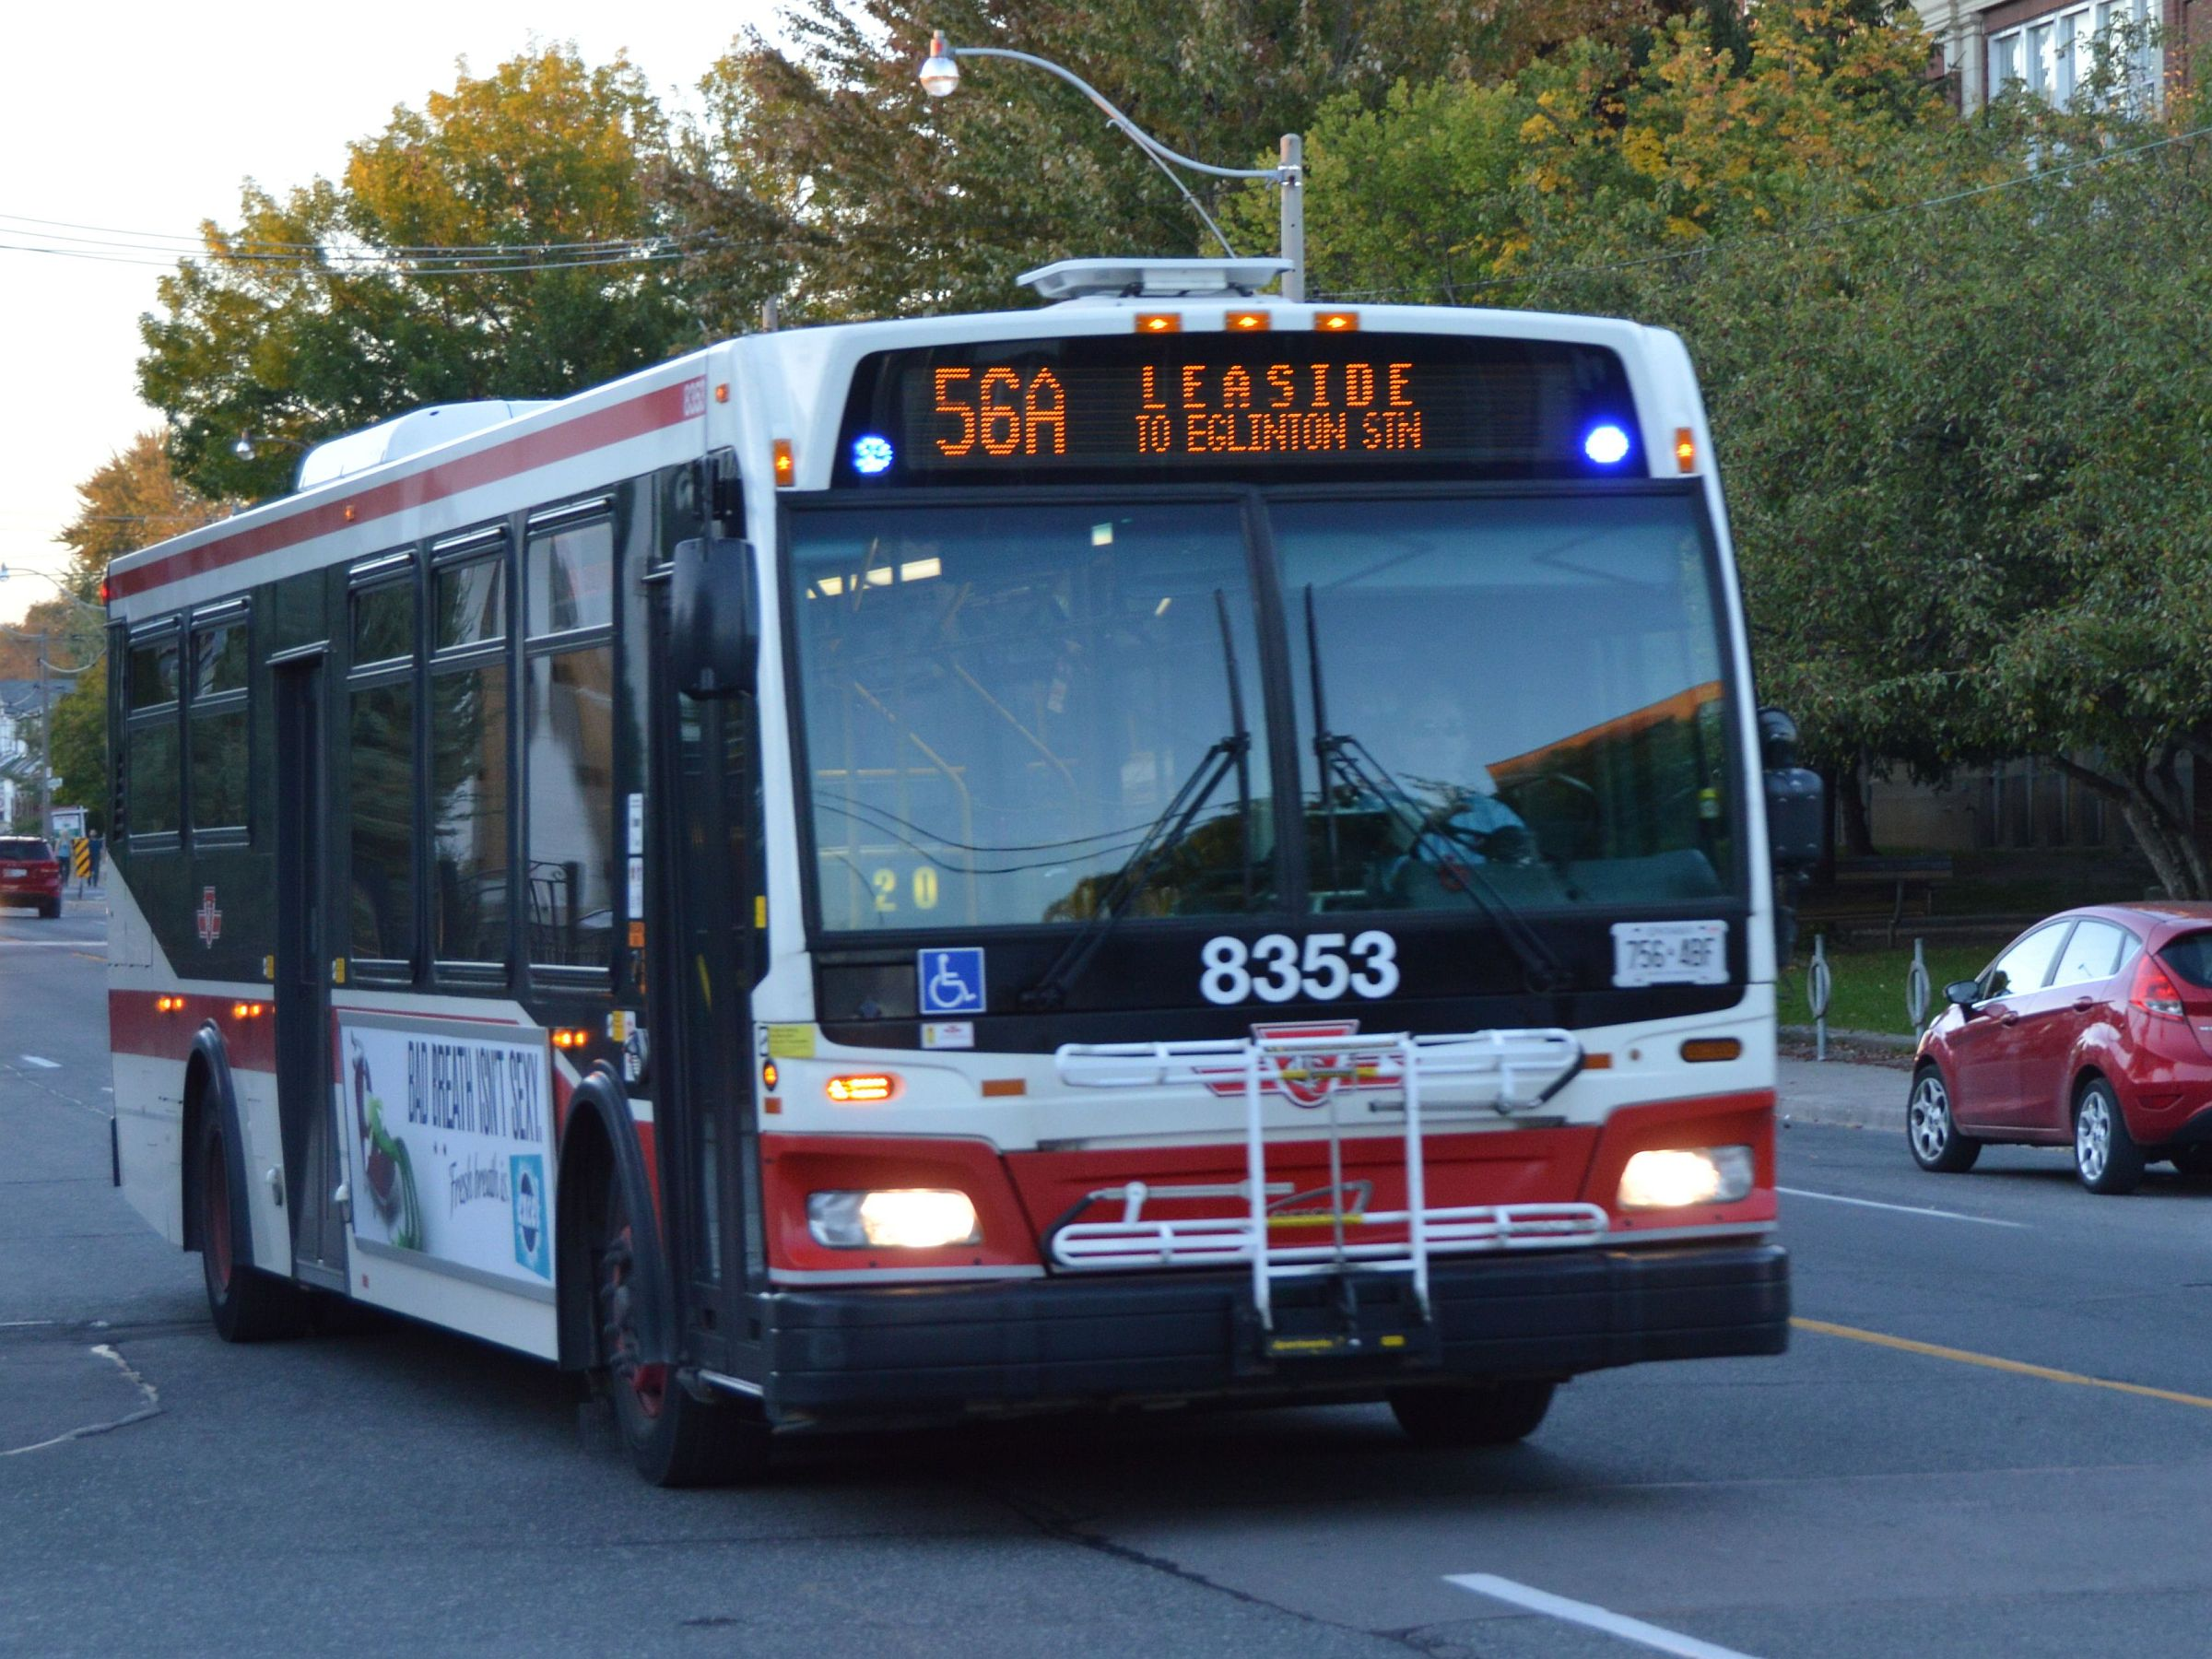 File:TTC 8353 on 56 Leaside southbound.JPG